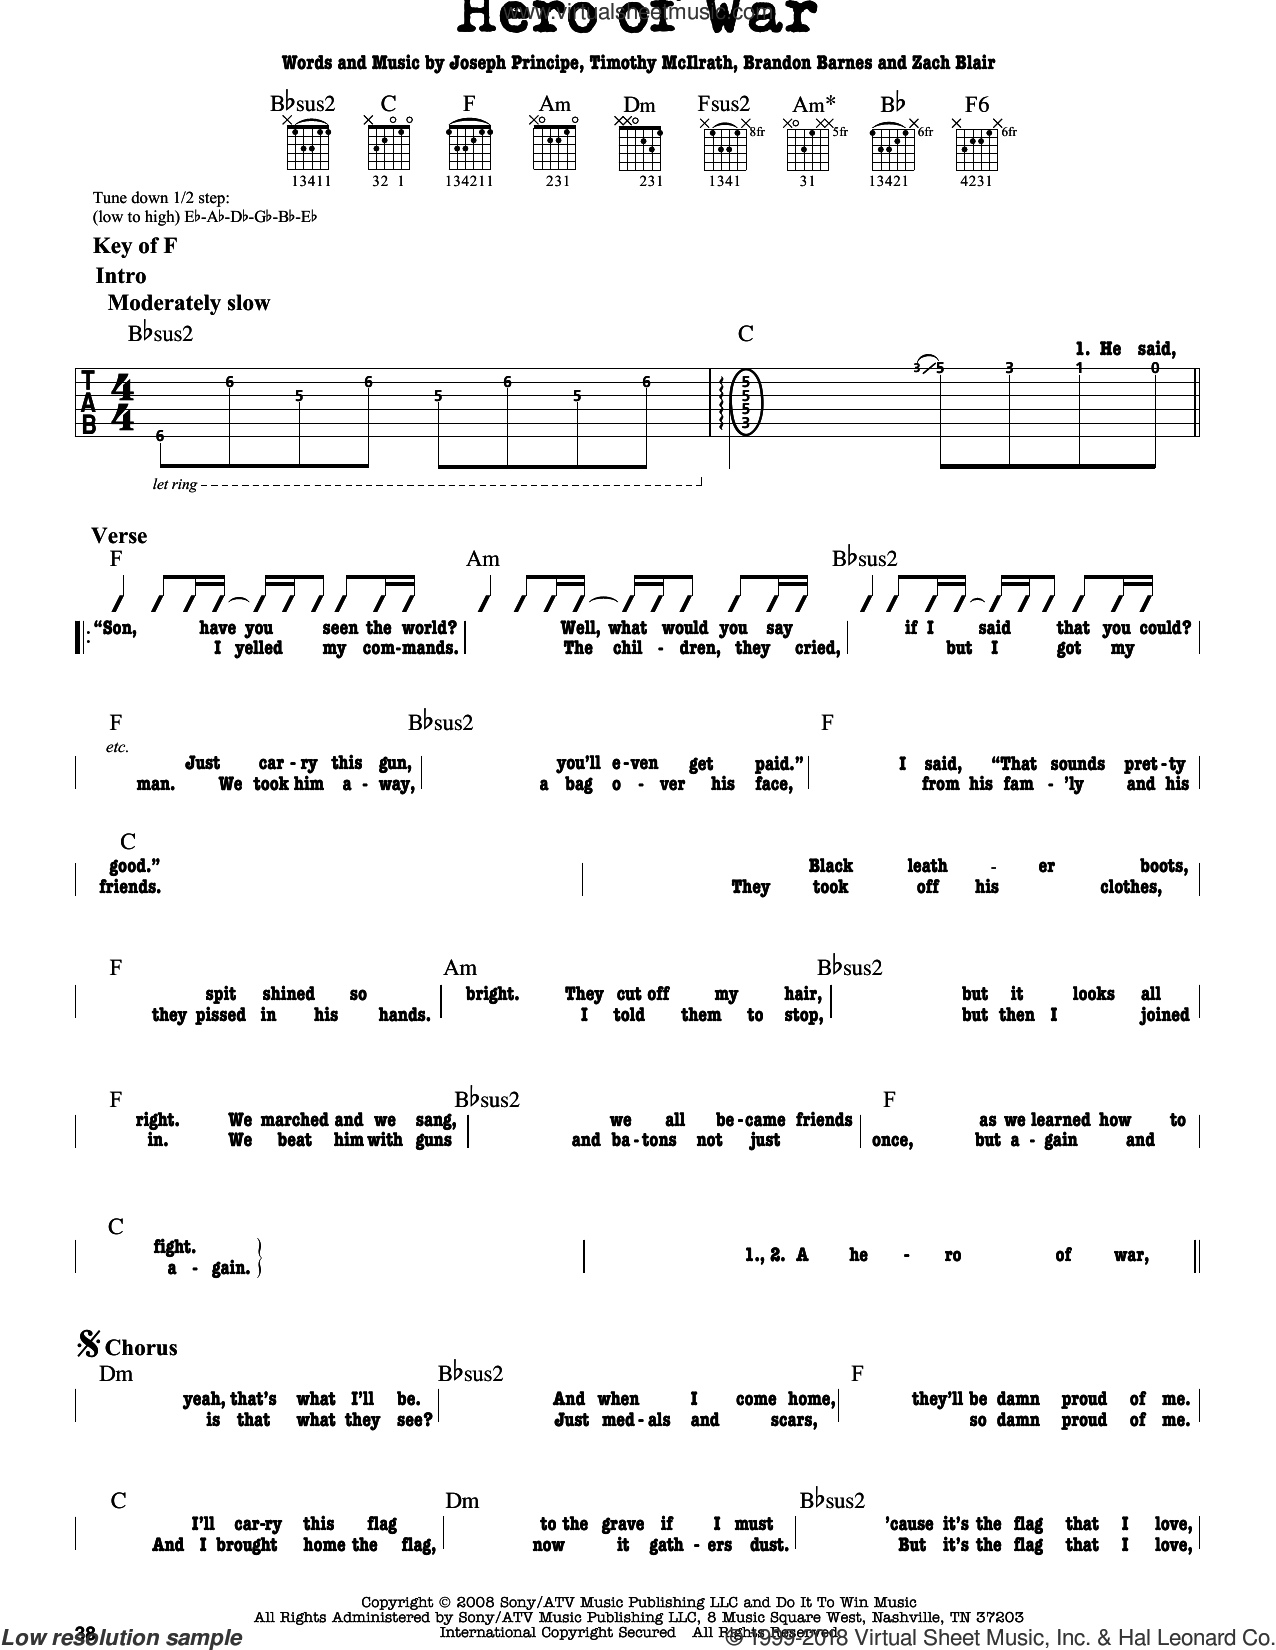 Hero Of War sheet music for guitar solo (lead sheet) by Zach Blair and Brandon Barnes. Score Image Preview.